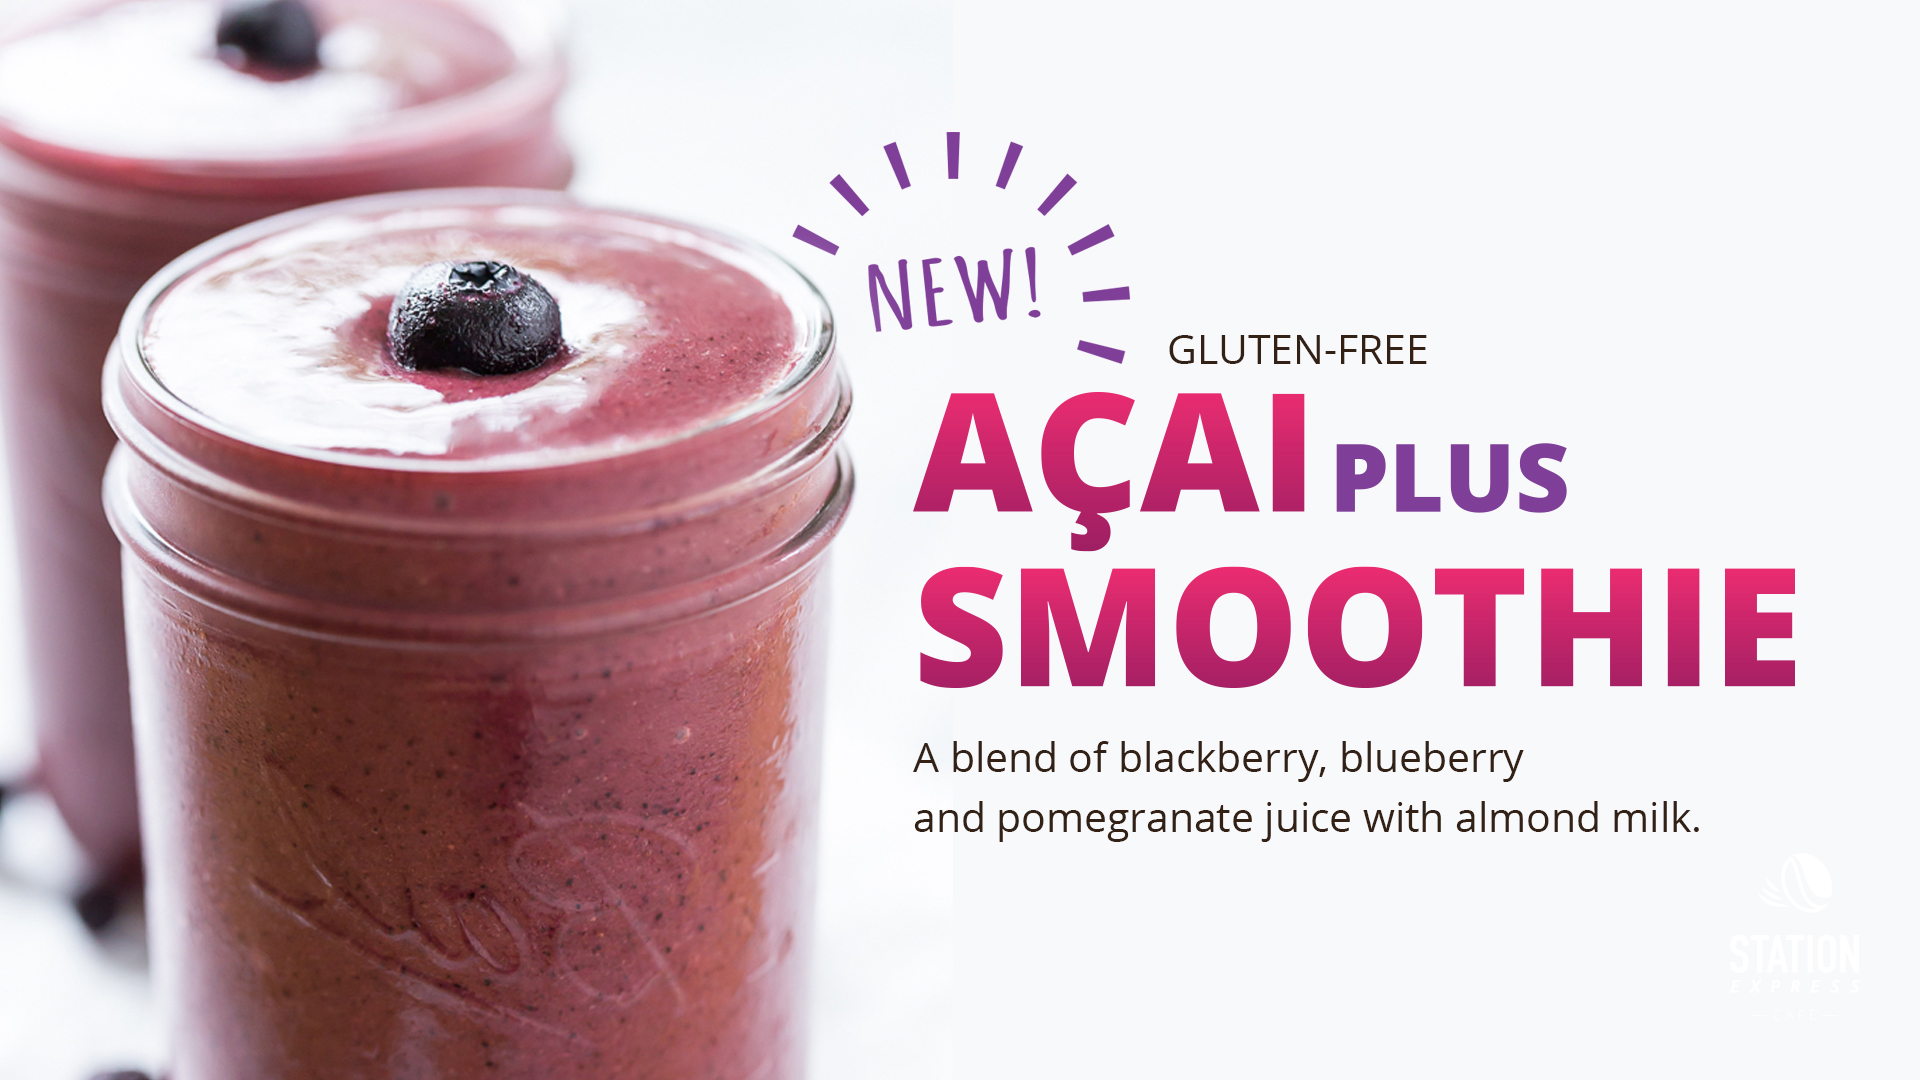 Acai plus smoothie